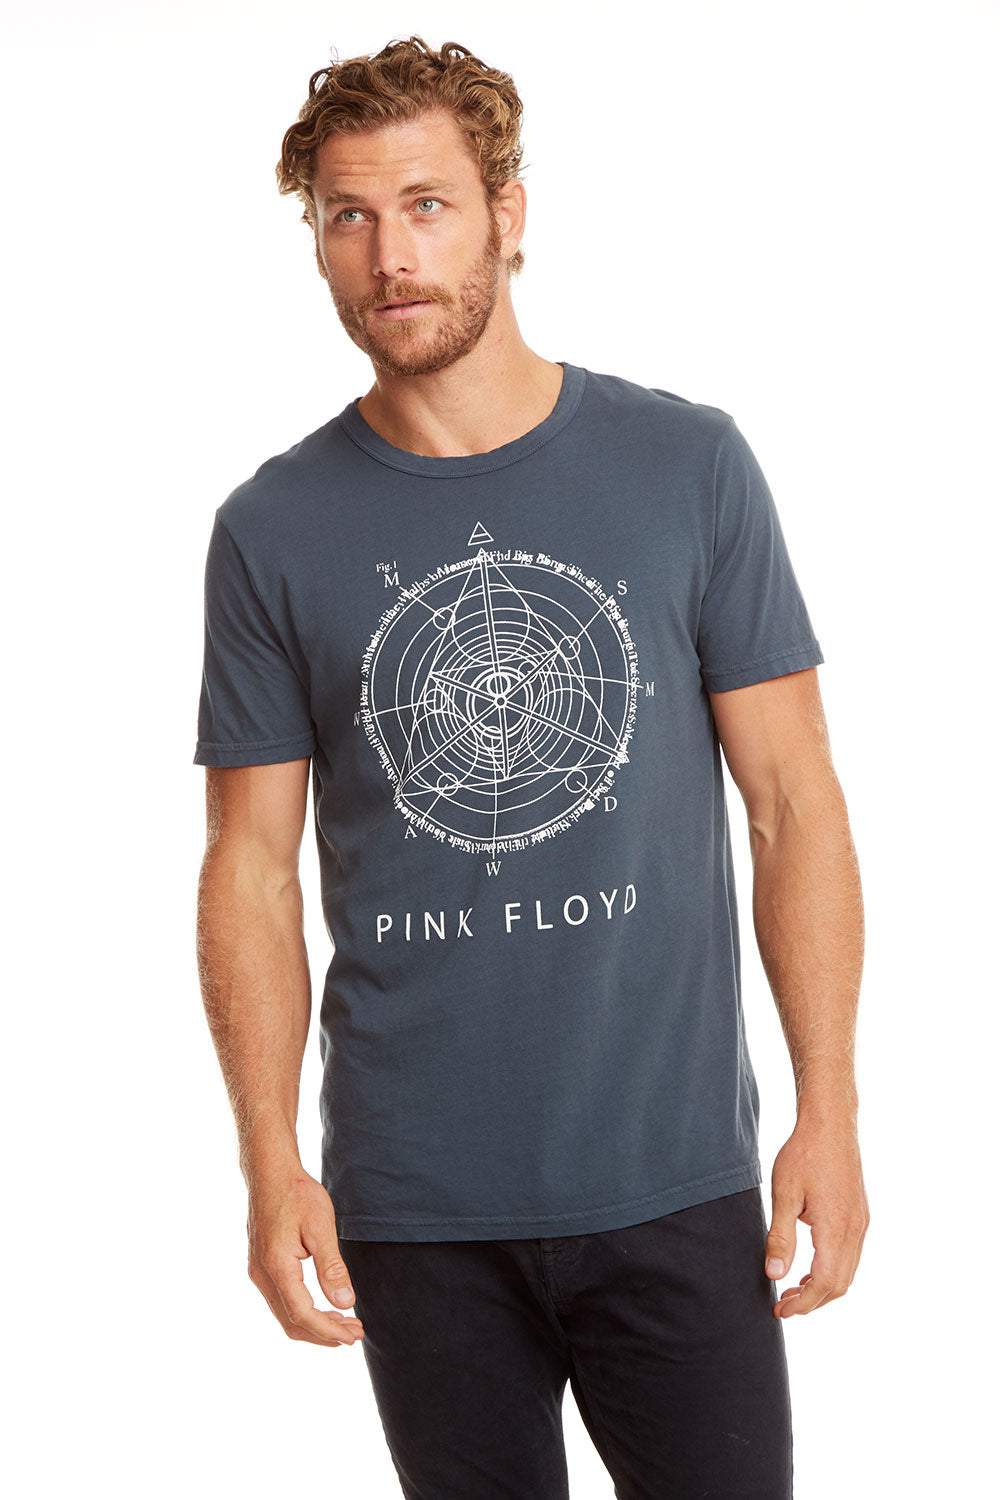 Pink Floyd - Triangulate MENS chaserbrand4.myshopify.com